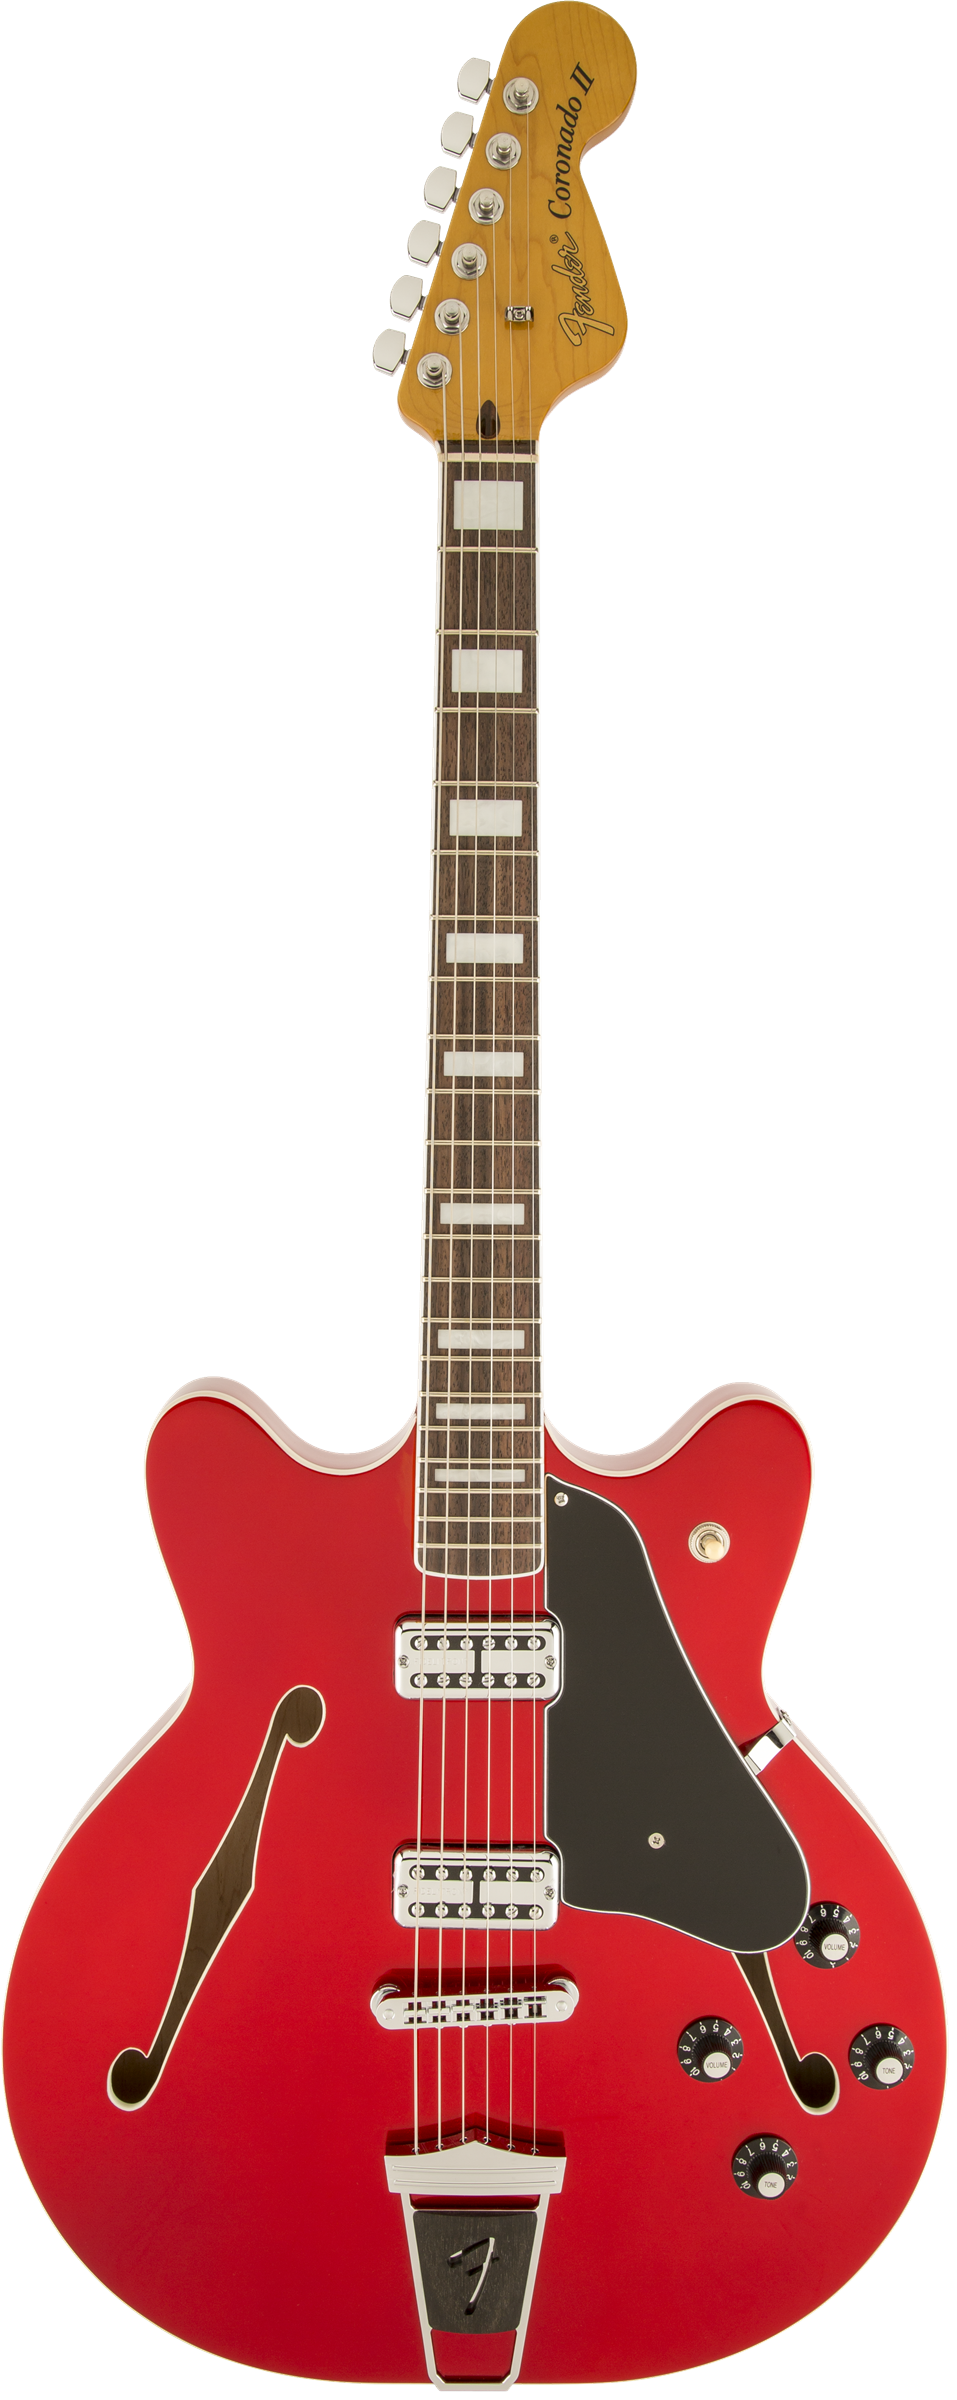 Полуакустическая электрогитара Fender Coronado Guitar, Candy Apple Red, Rosewood